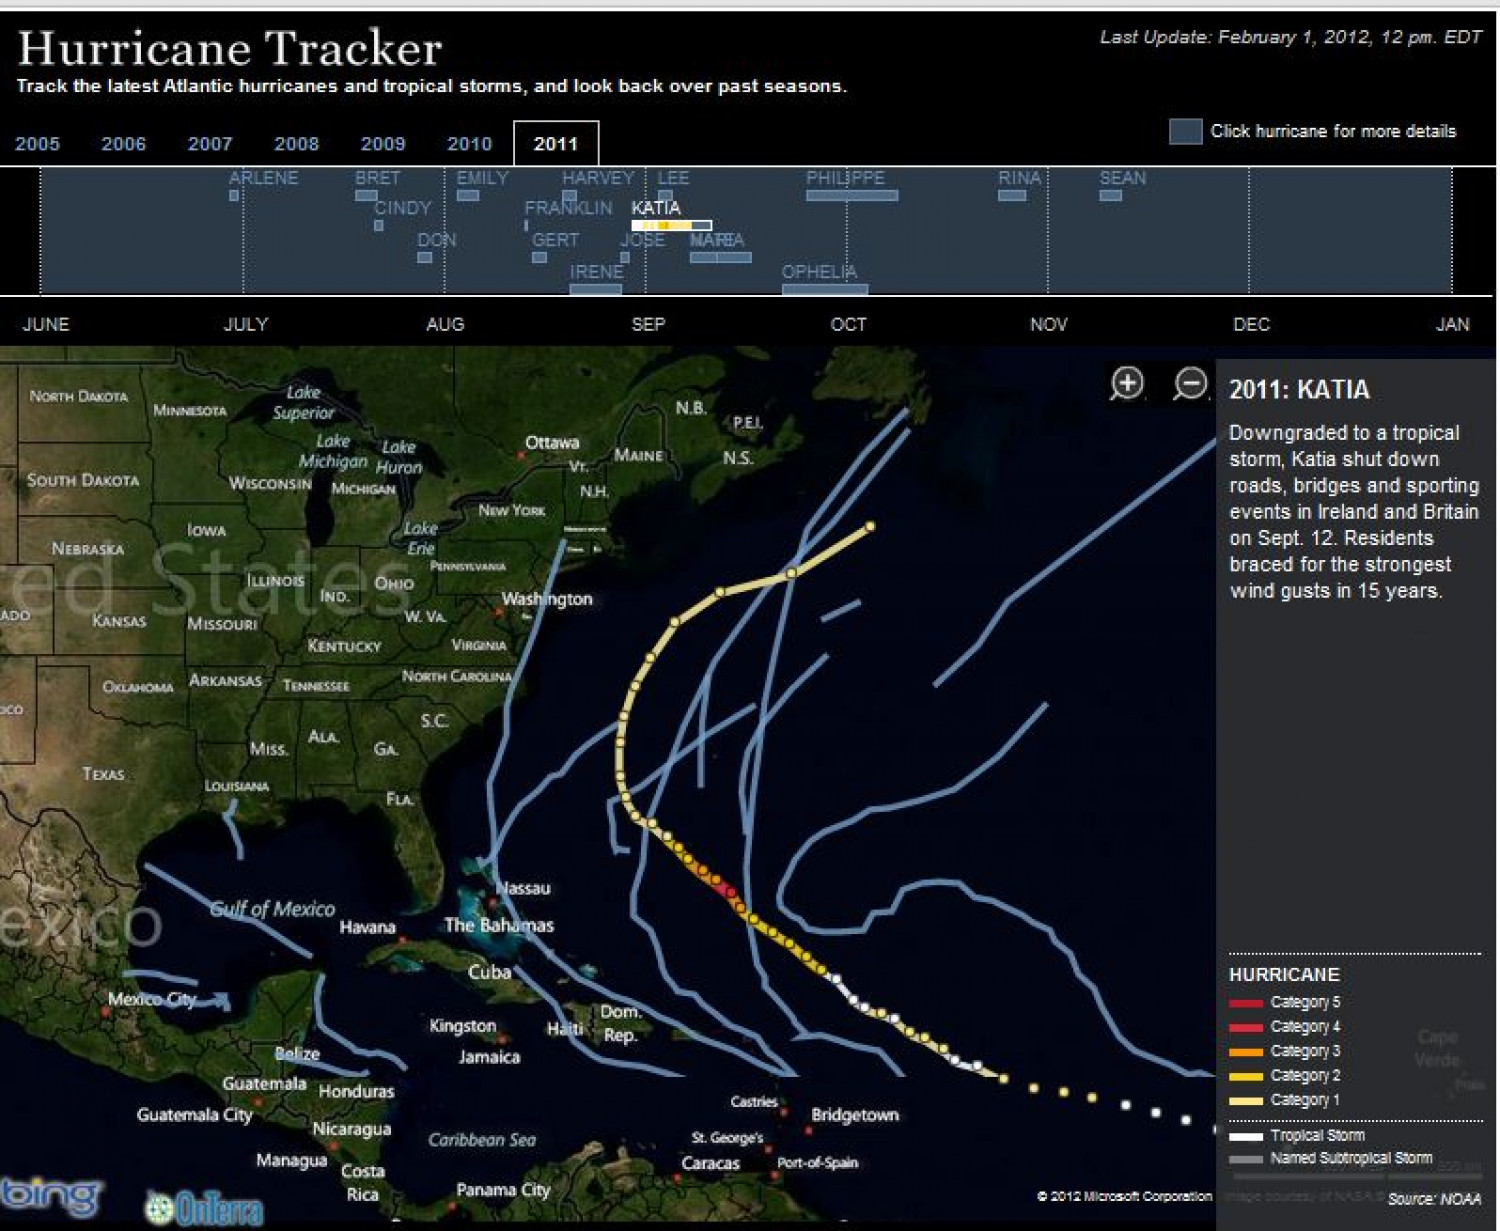 Hurricane Tracker Infographic